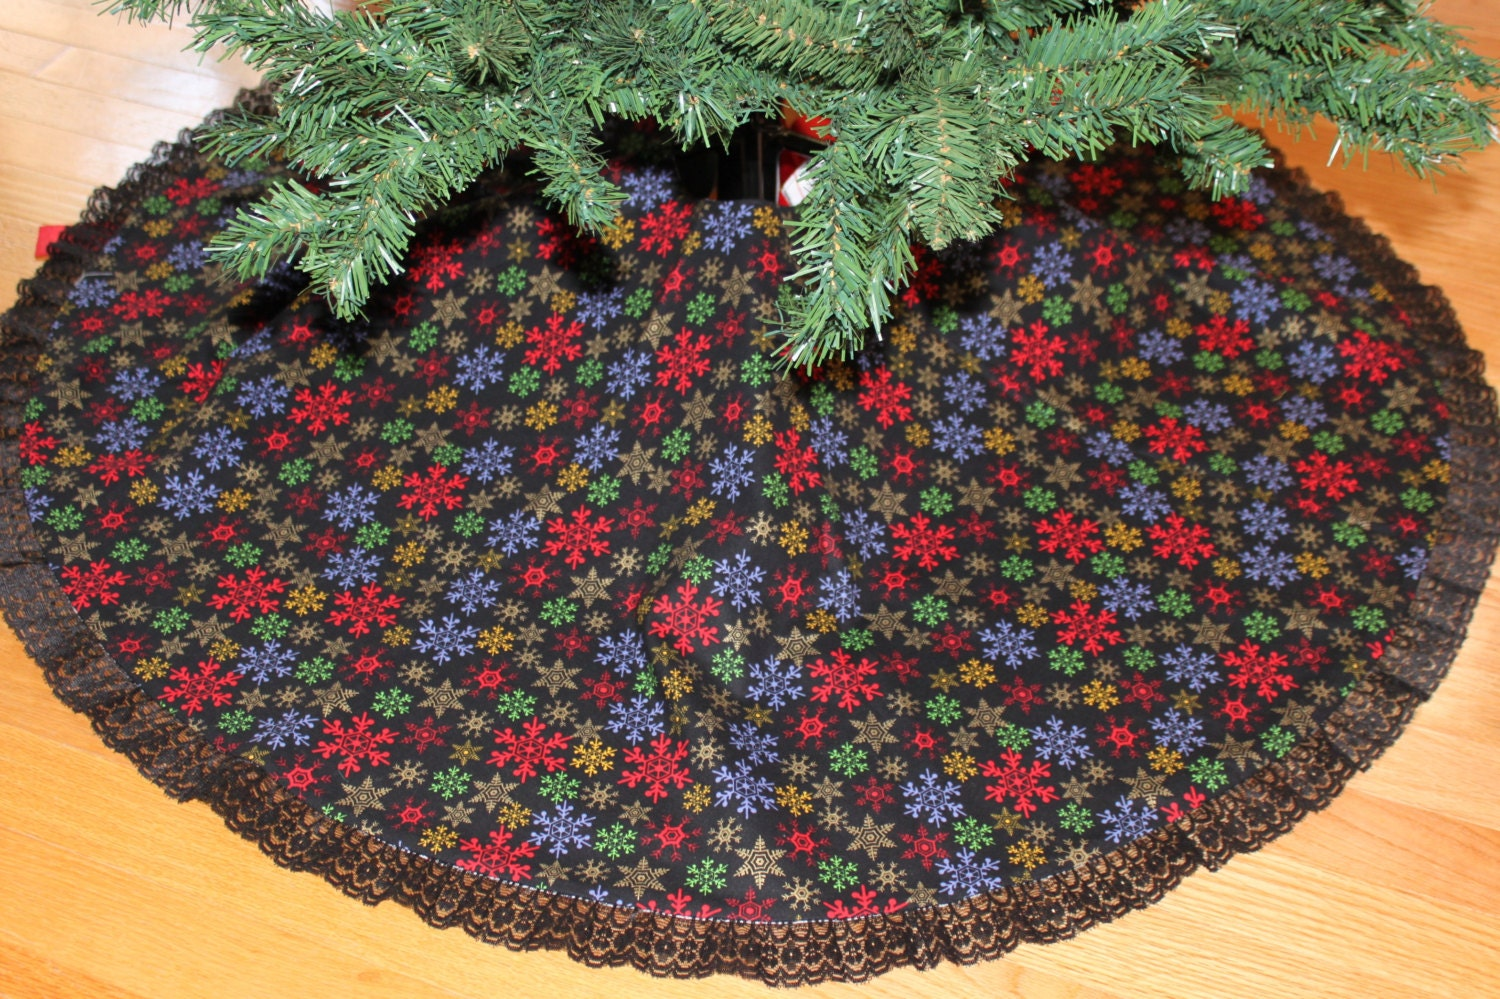 Christmas tree skirt handmade in multicolored snowflakes